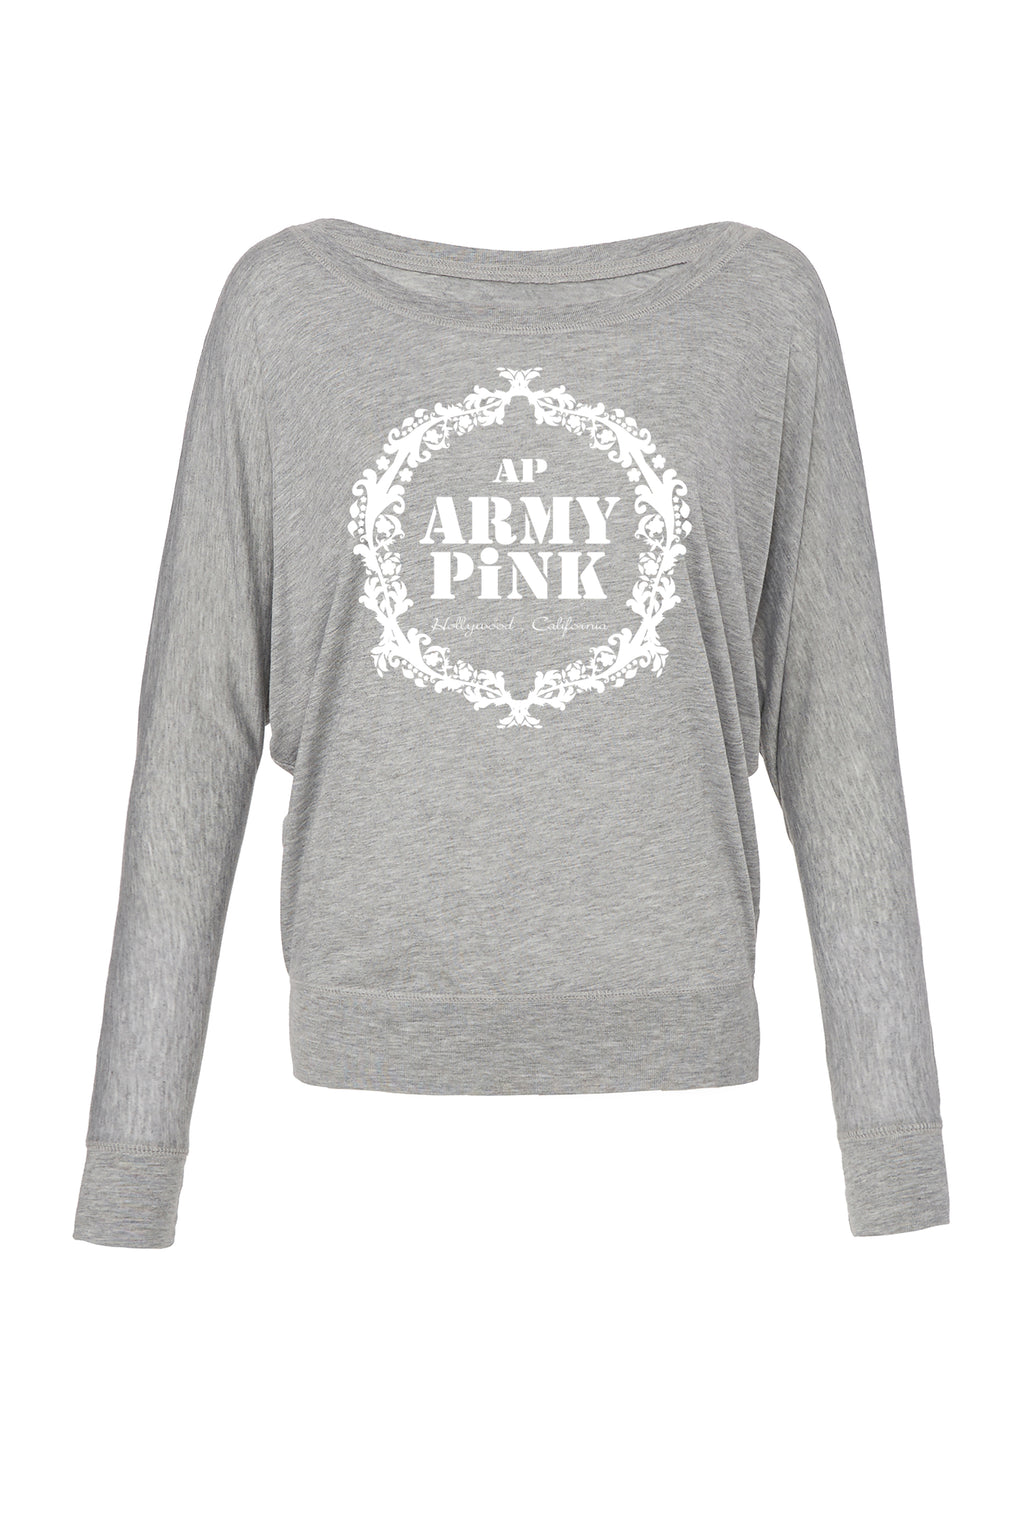 Athletic Heather Graphic Long Sleeve: White Army Pink Wreath for 42.00 at ARMY PINK